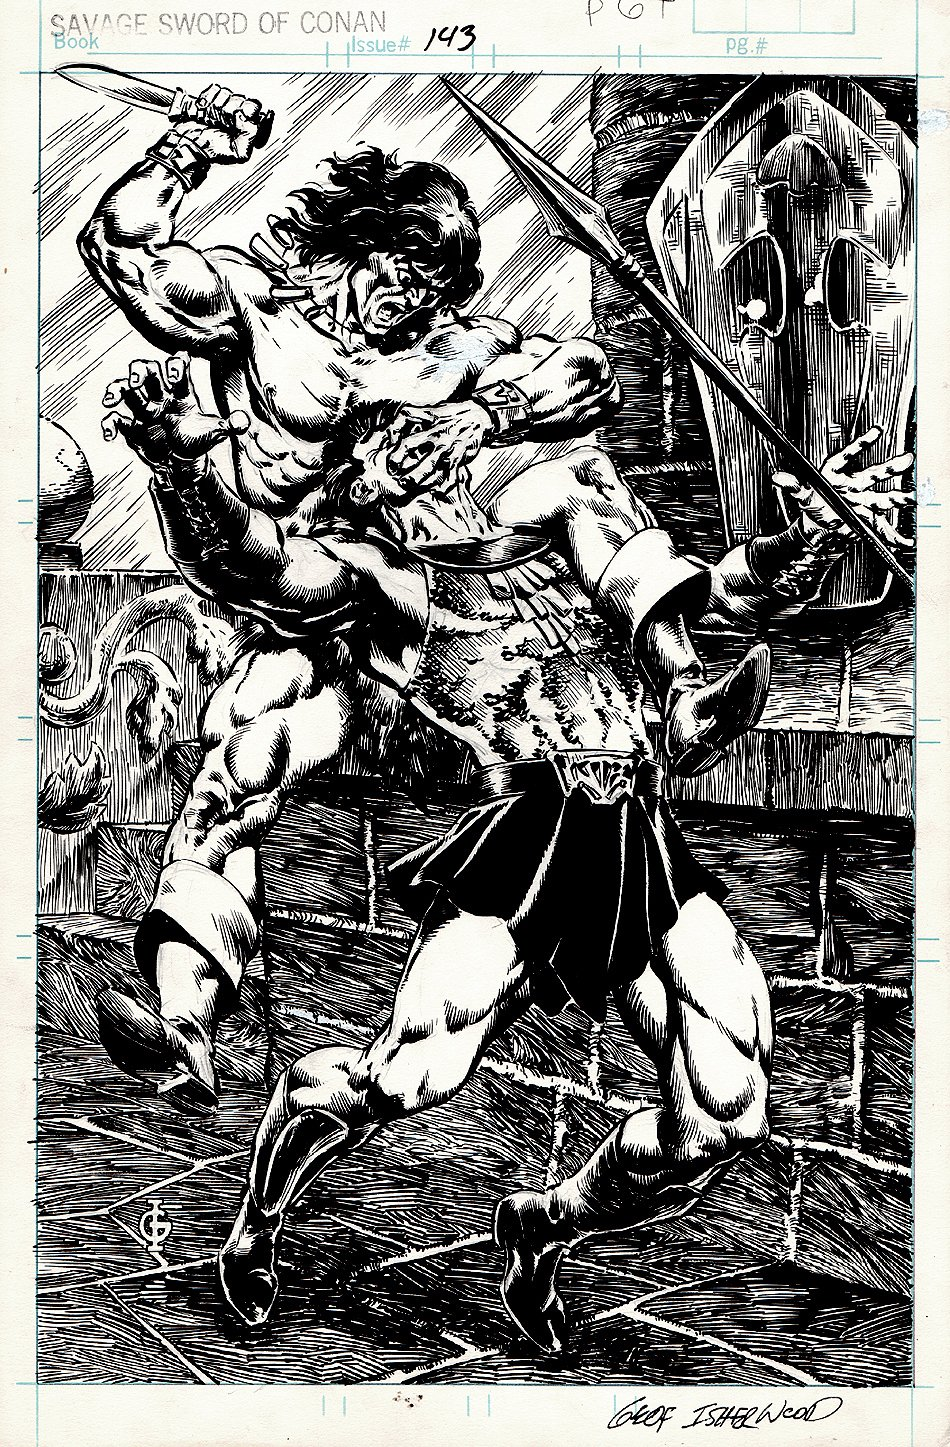 Savage Sword of Conan #143 Published SPLASH (1987)